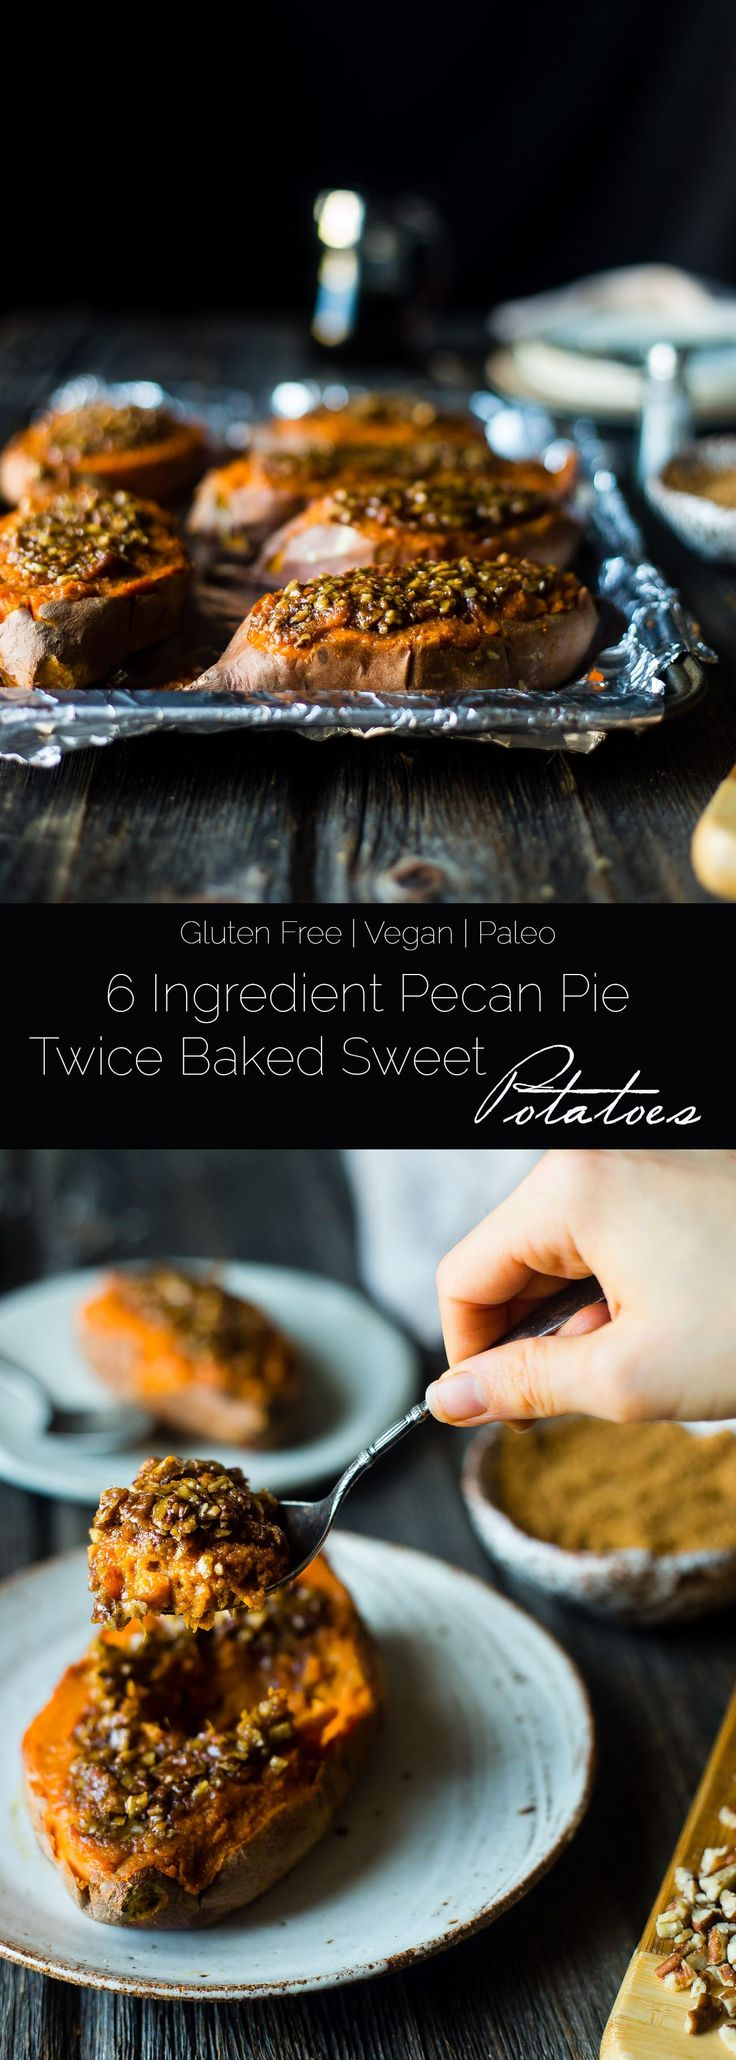 6 Ingredient Pecan Pie Twice Baked Sweet Potatotes - These tastes like pecan pie! They're the perfect sweet and savory, gluten free, healthy Thanksgiving side dish that's paleo and vegan friendly!   Foodfaithfitness.com   @FoodFaithFit